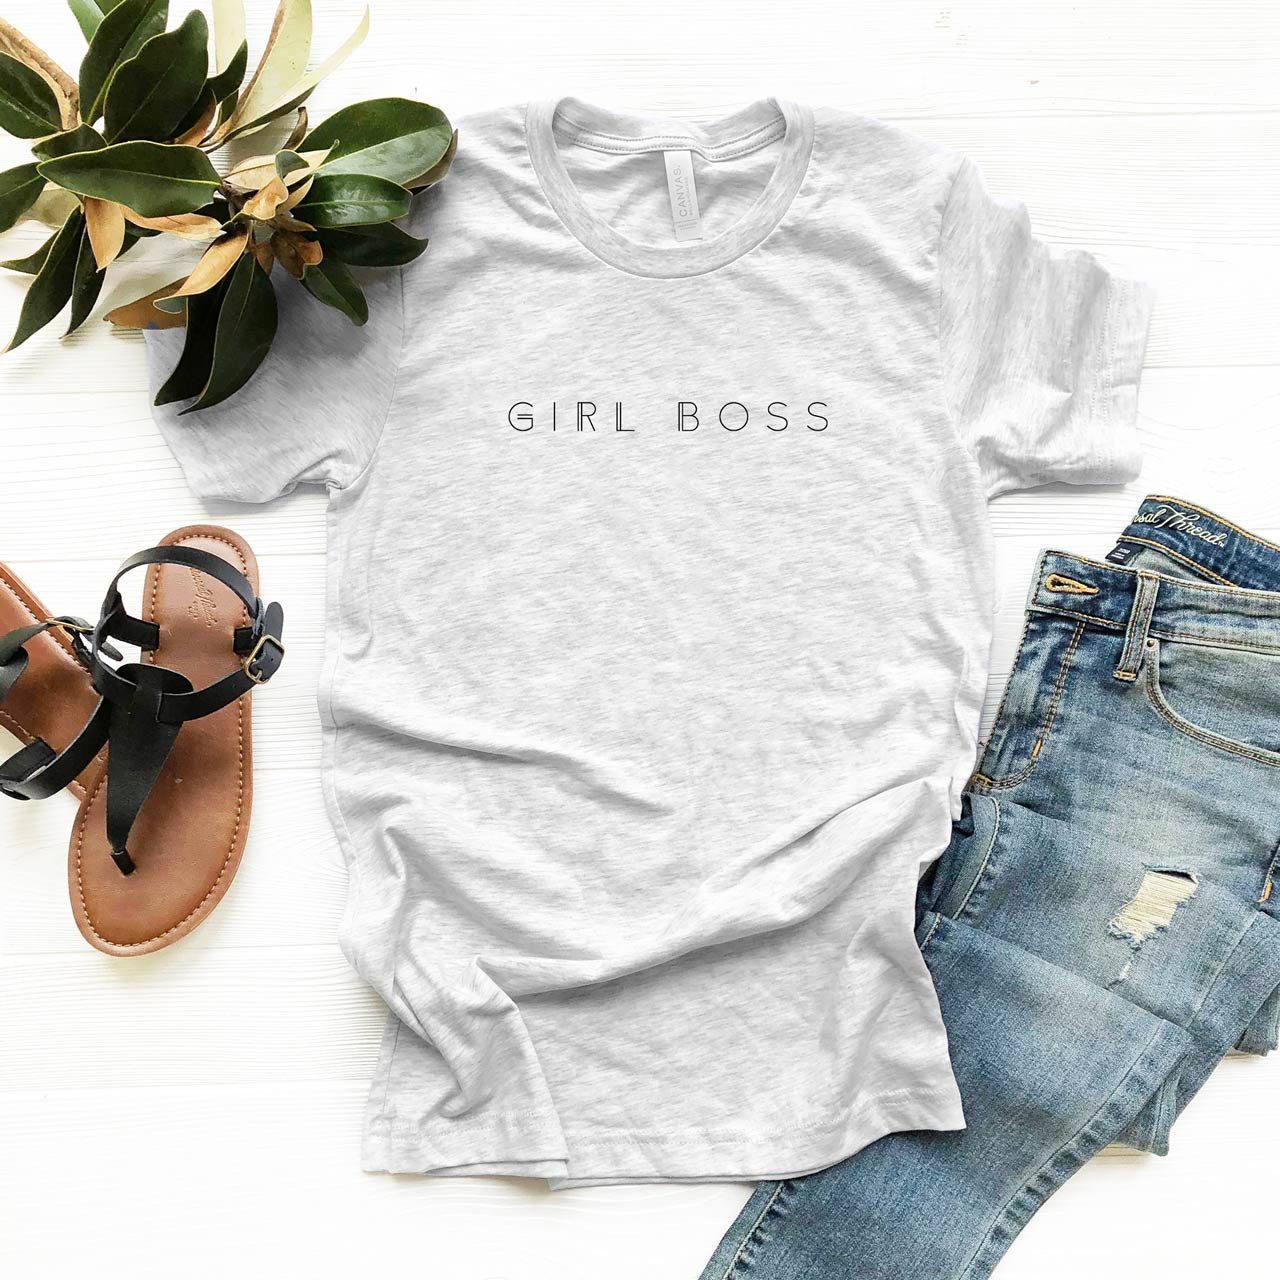 GIRL BOSS Vintage T-Shirt (Black on Light Gray Fleck) from The Printed Home